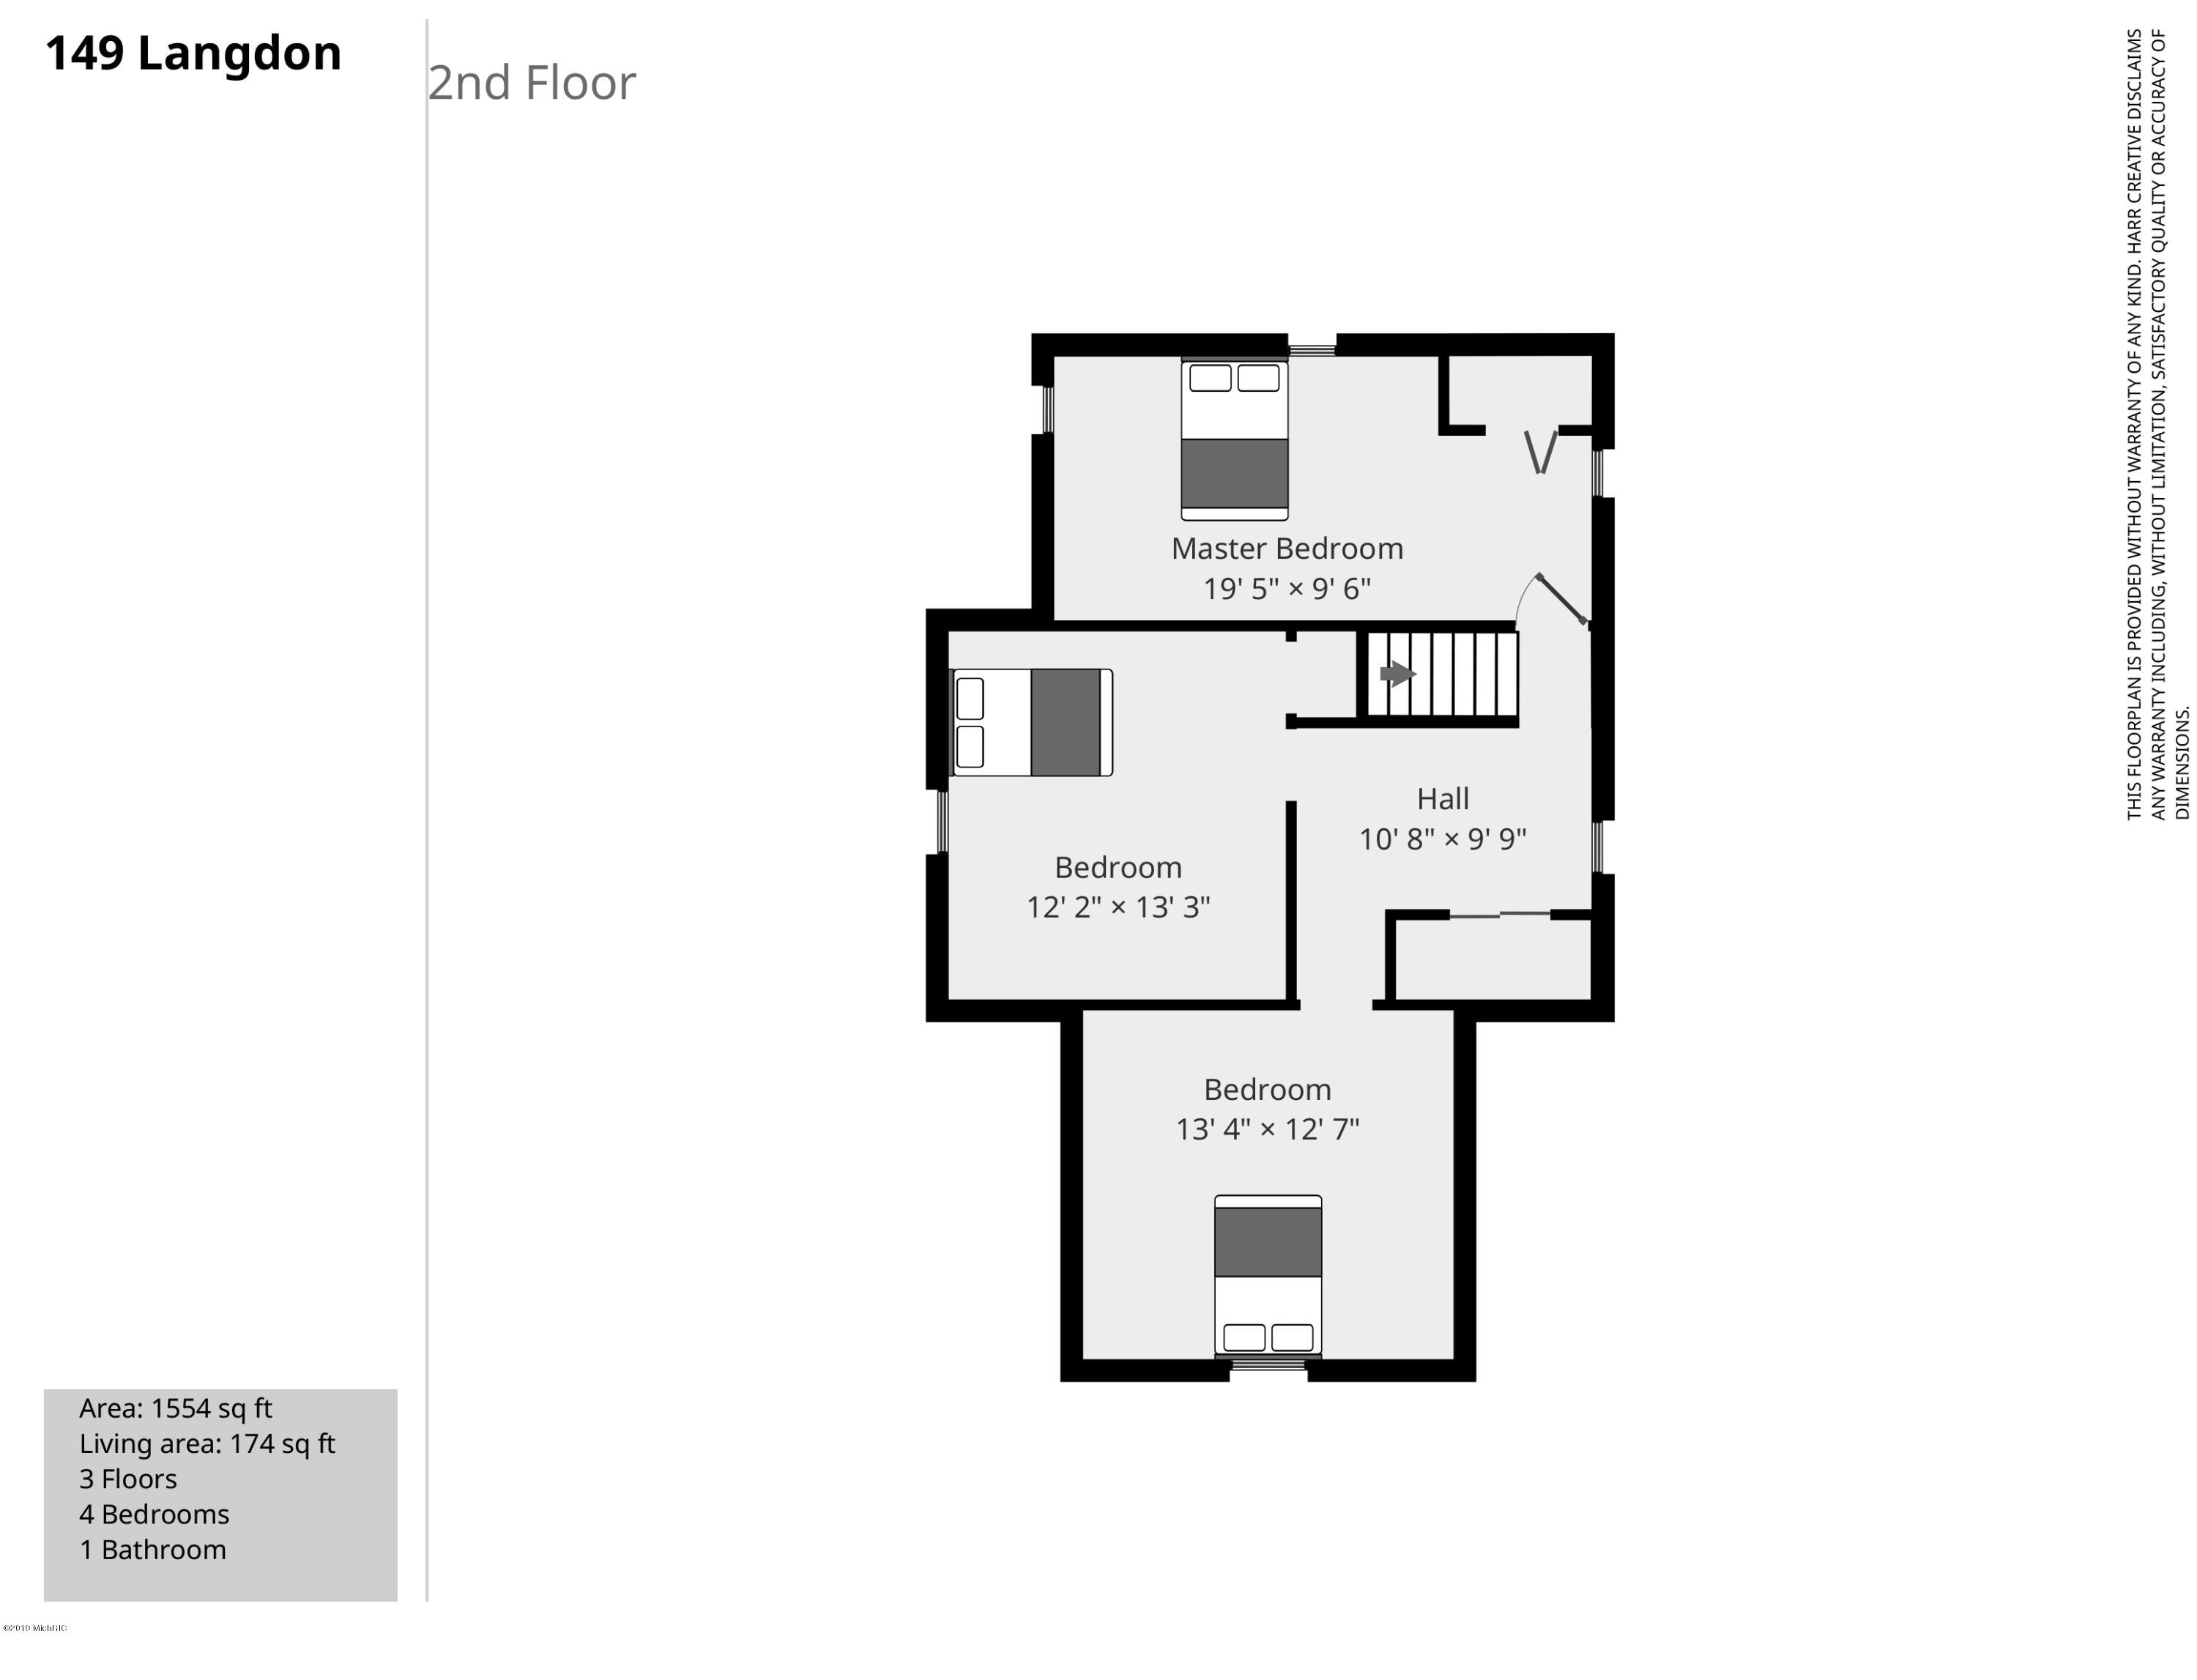 149 Langdon-2nd Floor